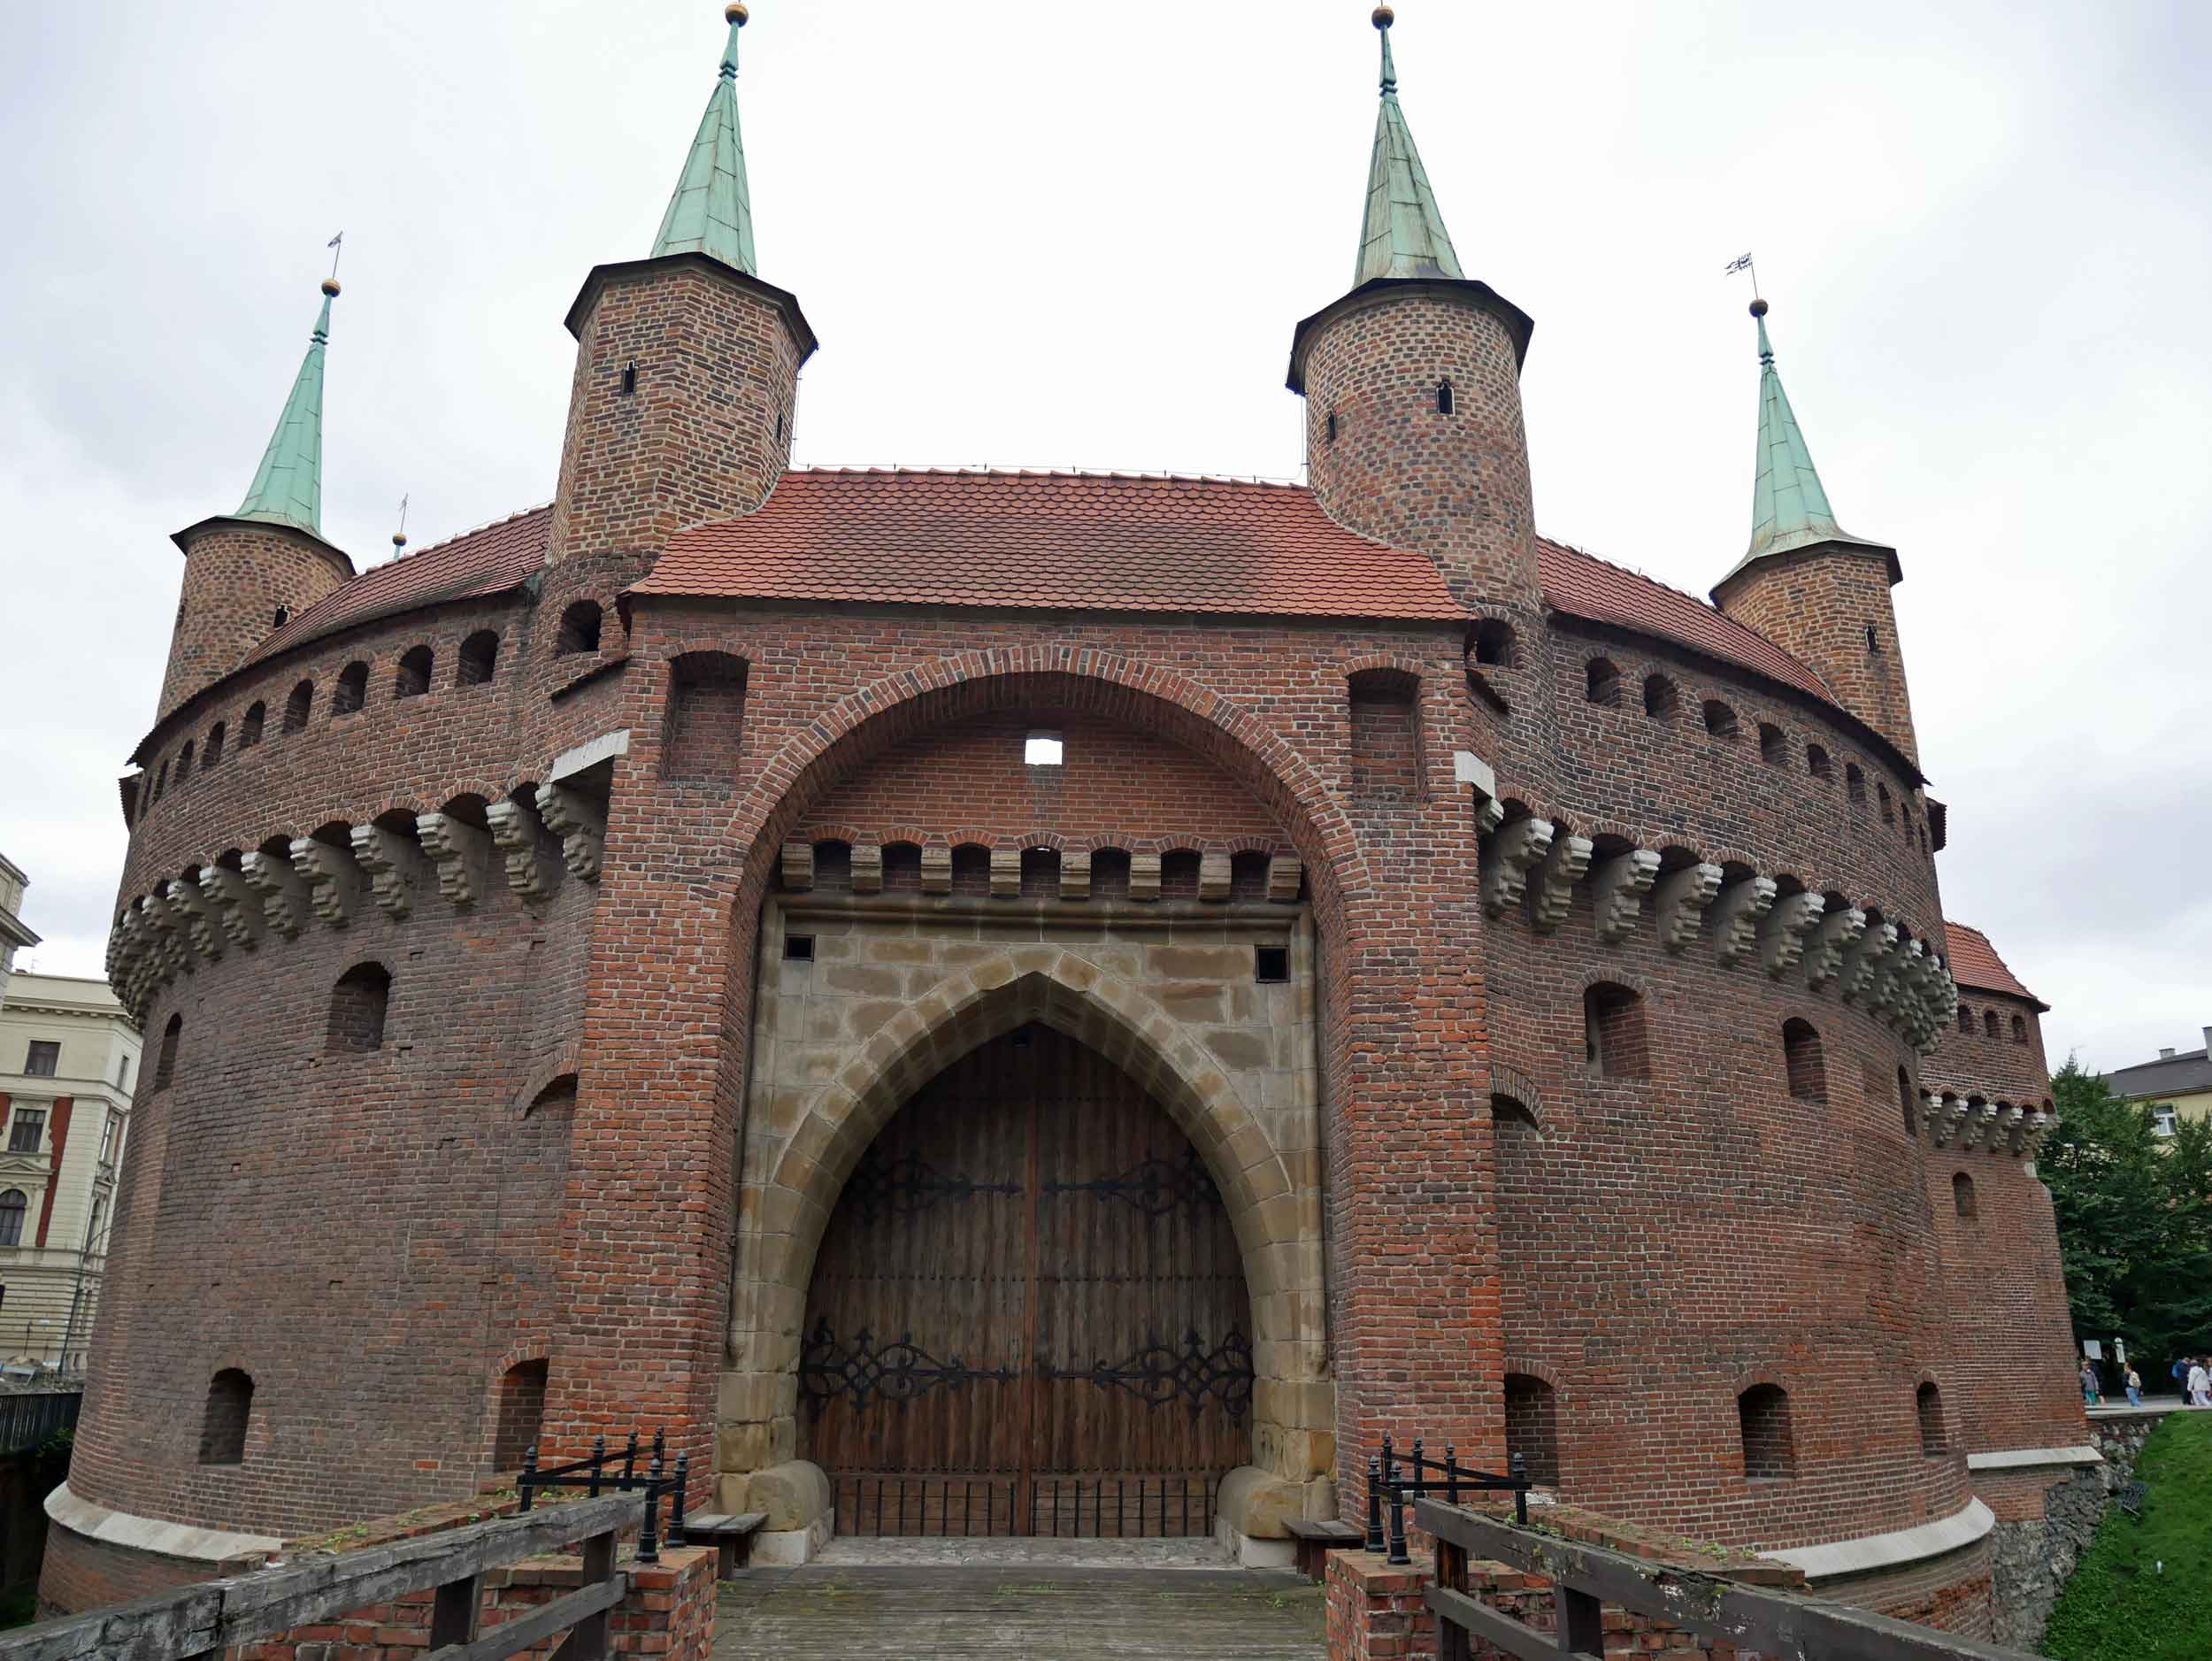 The Krakow Barbican is one of the few remaining relics of the complex network of fortifications and defensive barriers that once encircled the royal city.